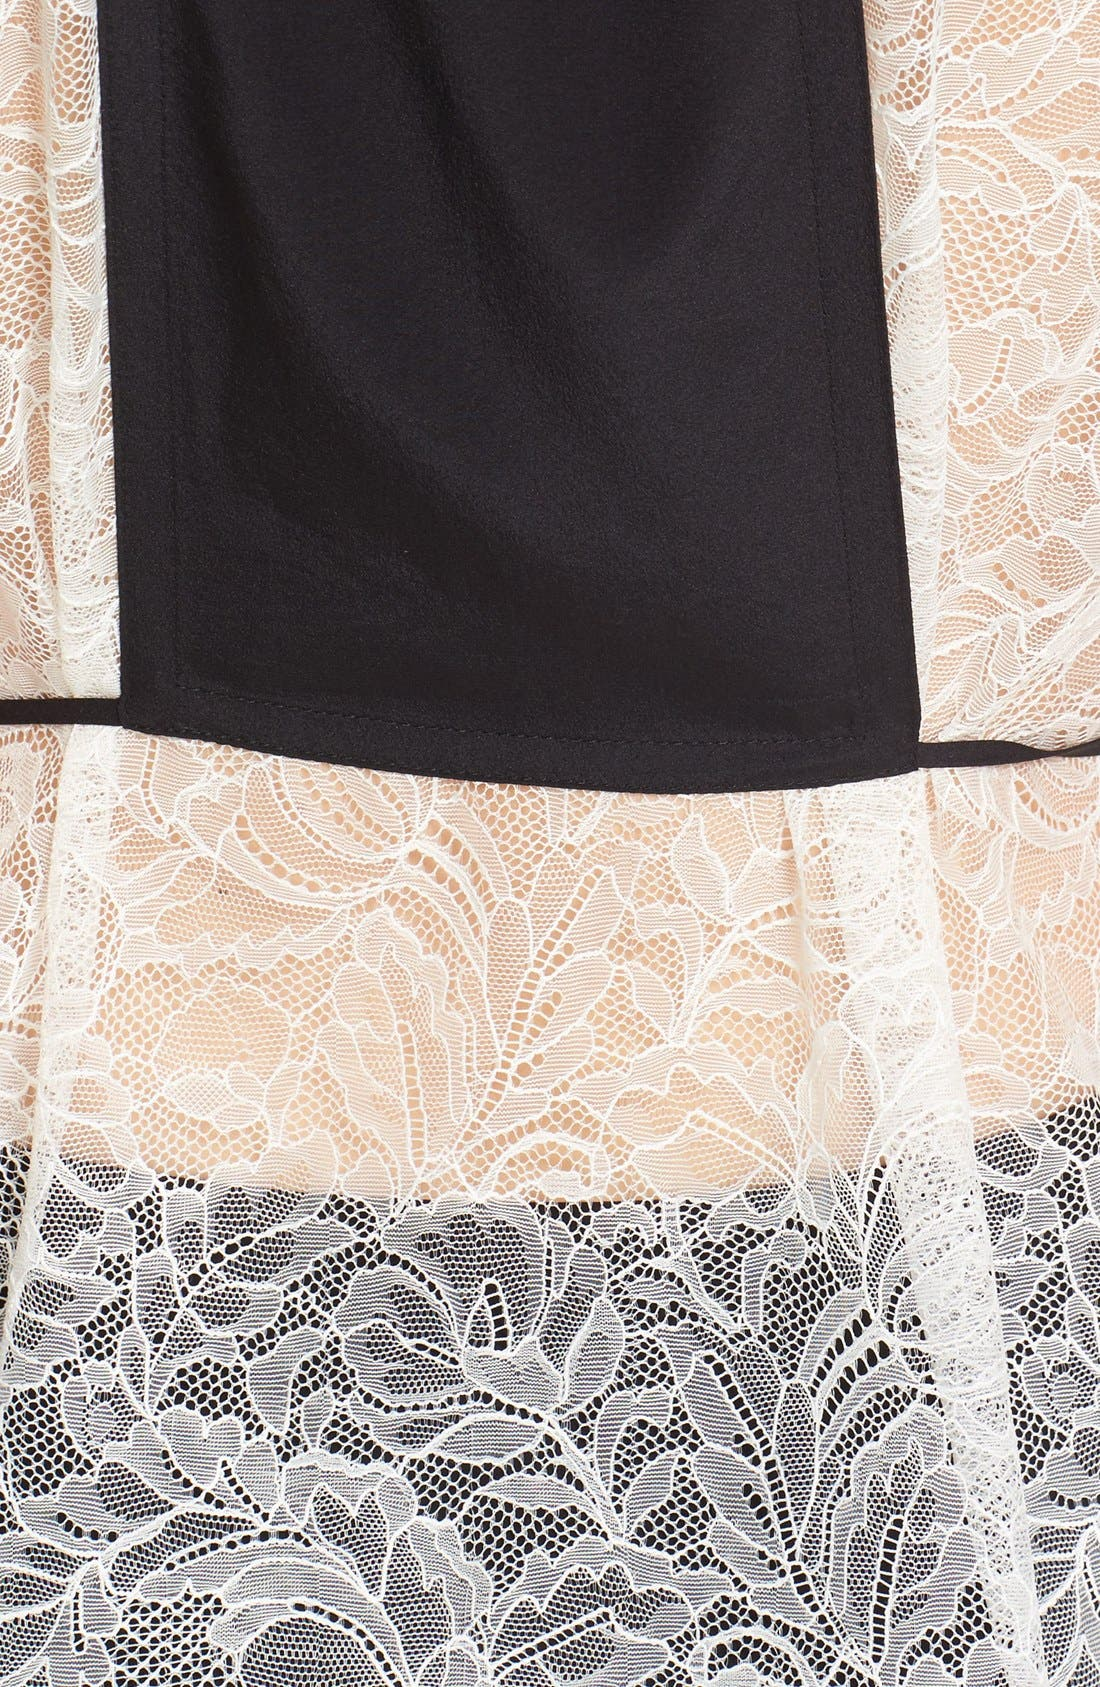 Alternate Image 3  - Yigal Azrouël Floral Embroidered Lace Top